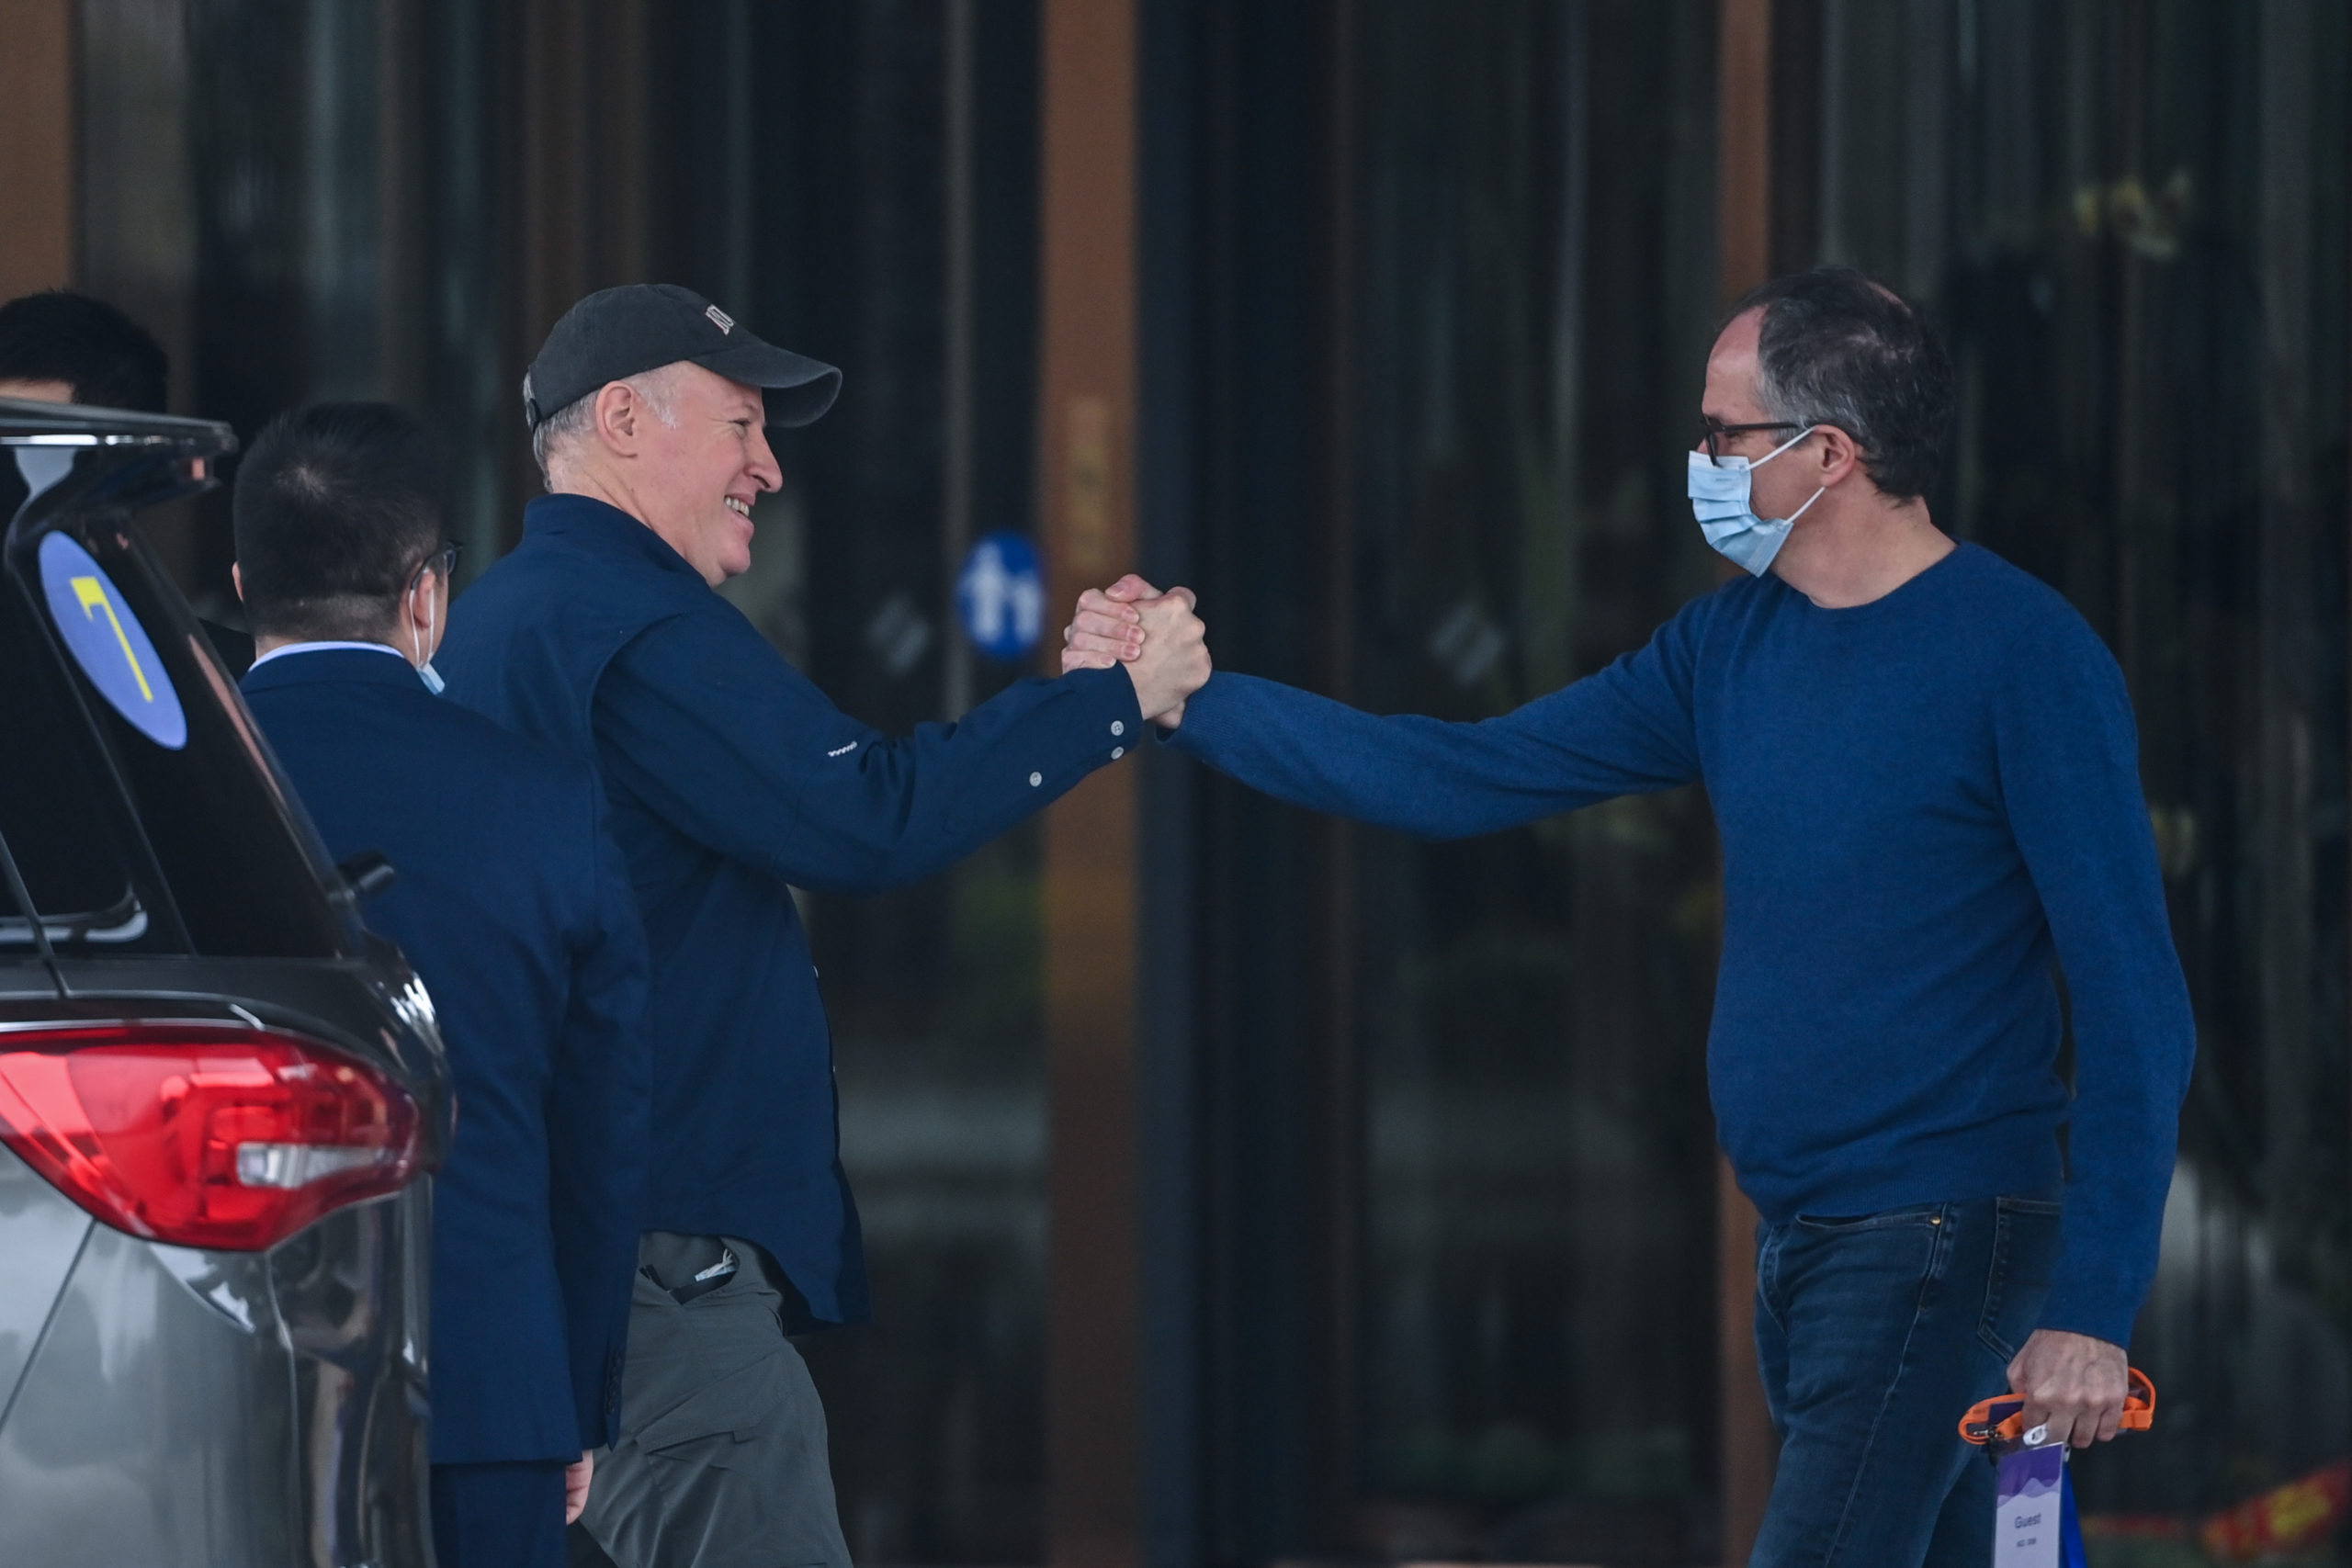 WHO team members Peter Daszak (L) and Peter Ben Embarek (R) shake hands as Daszak leaves the hotel after the World Health Organization (WHO) team wrapped up its investigation into the origins of the COVID-19 coronavirus in Wuhan in China's central Hubei province on February 10, 2021. (HECTOR RETAMAL/AFP via Getty Images)